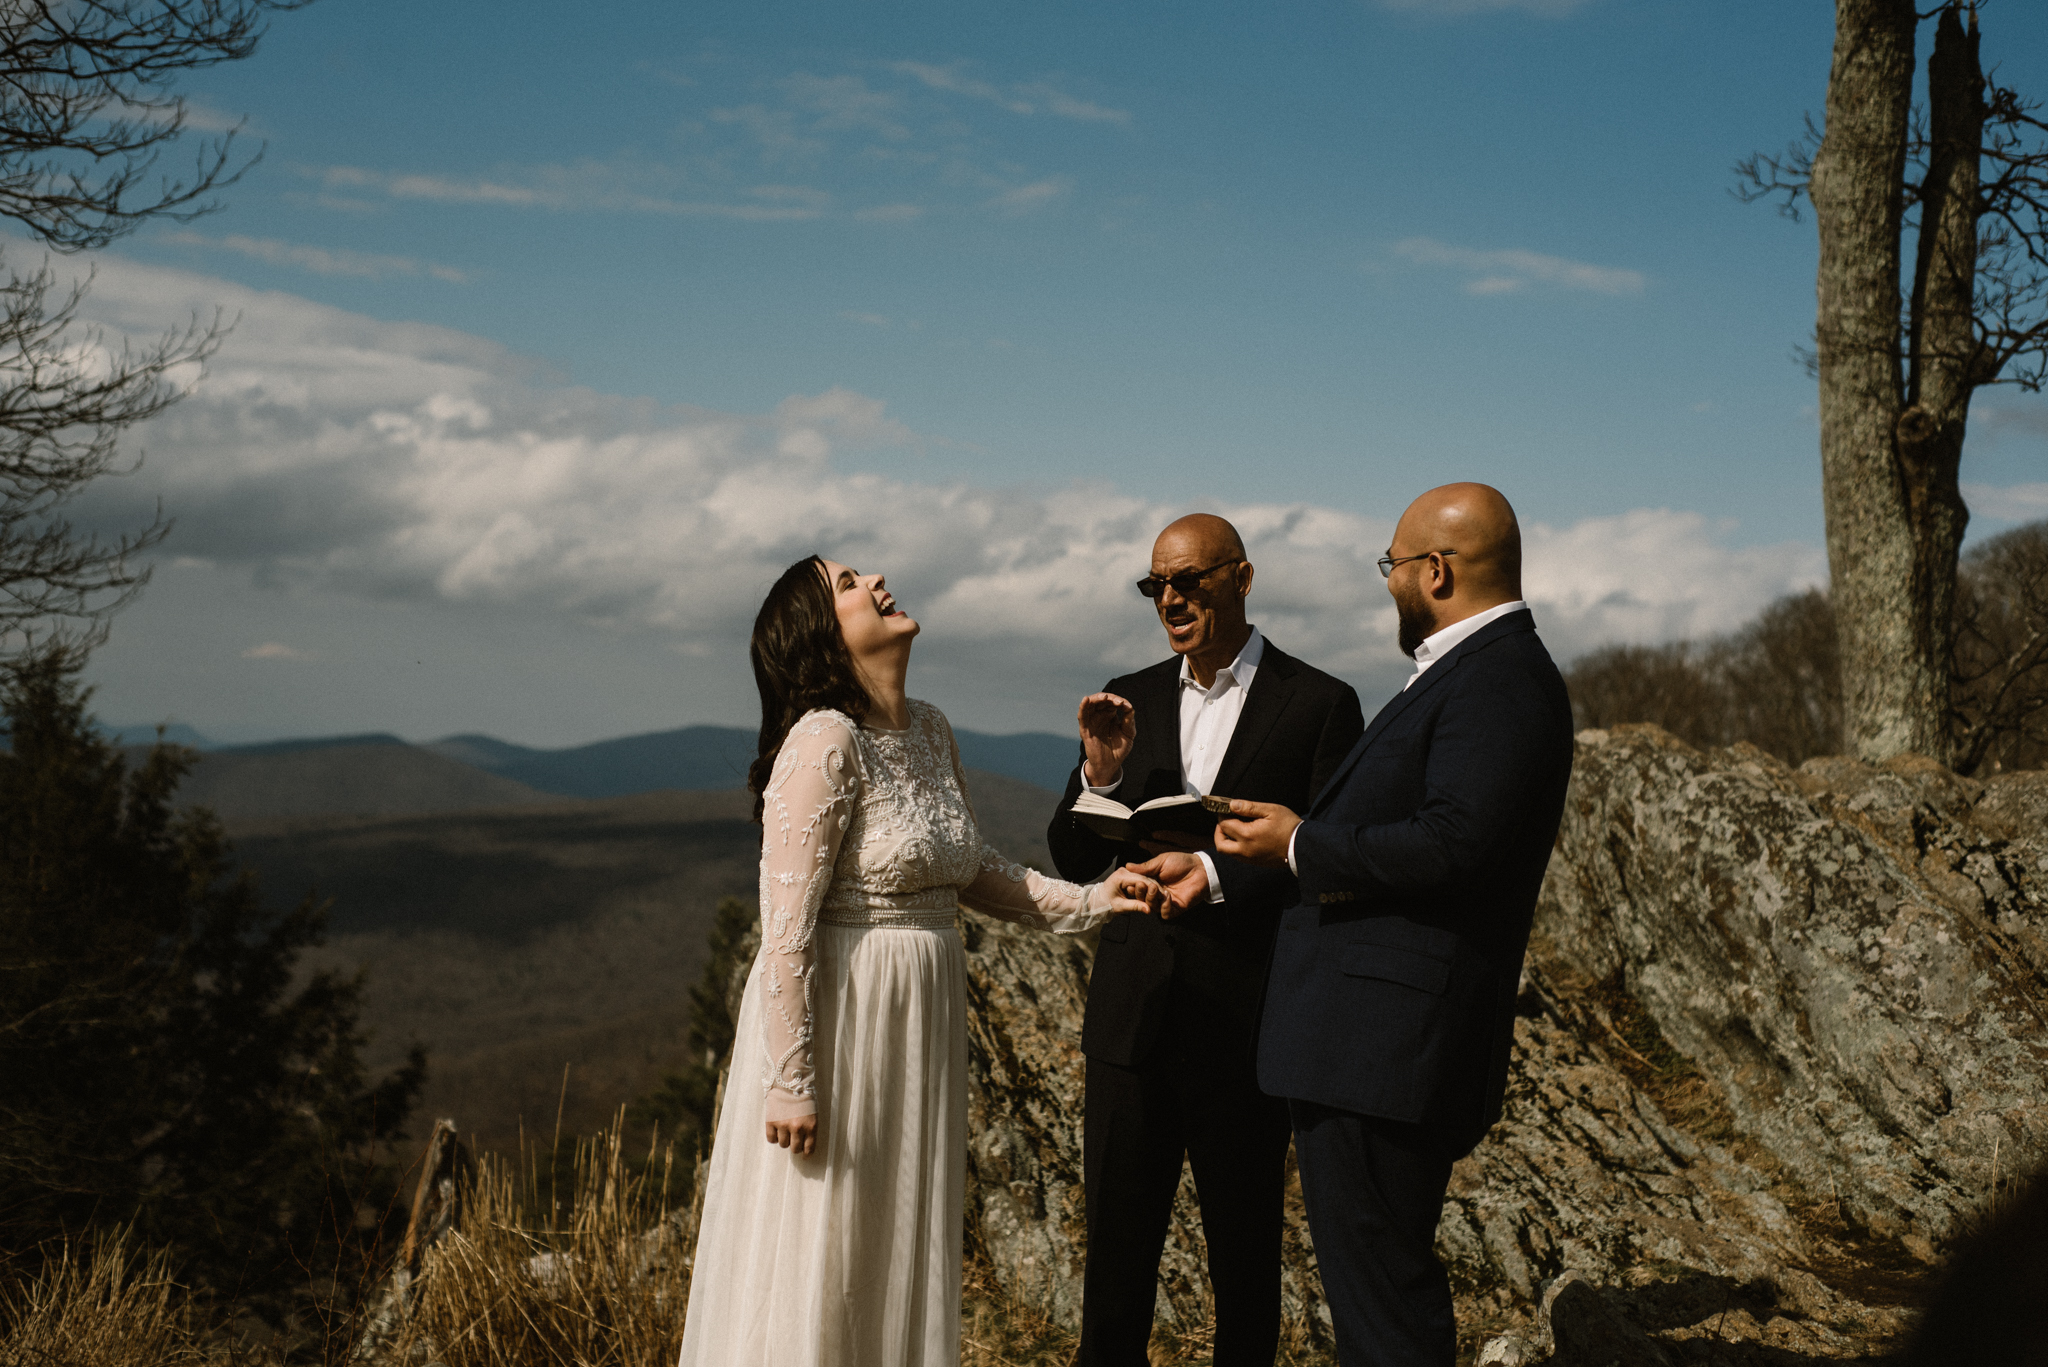 Shenandoah National Park Adventure Photographer for Engagements Elopements and Small Weddings